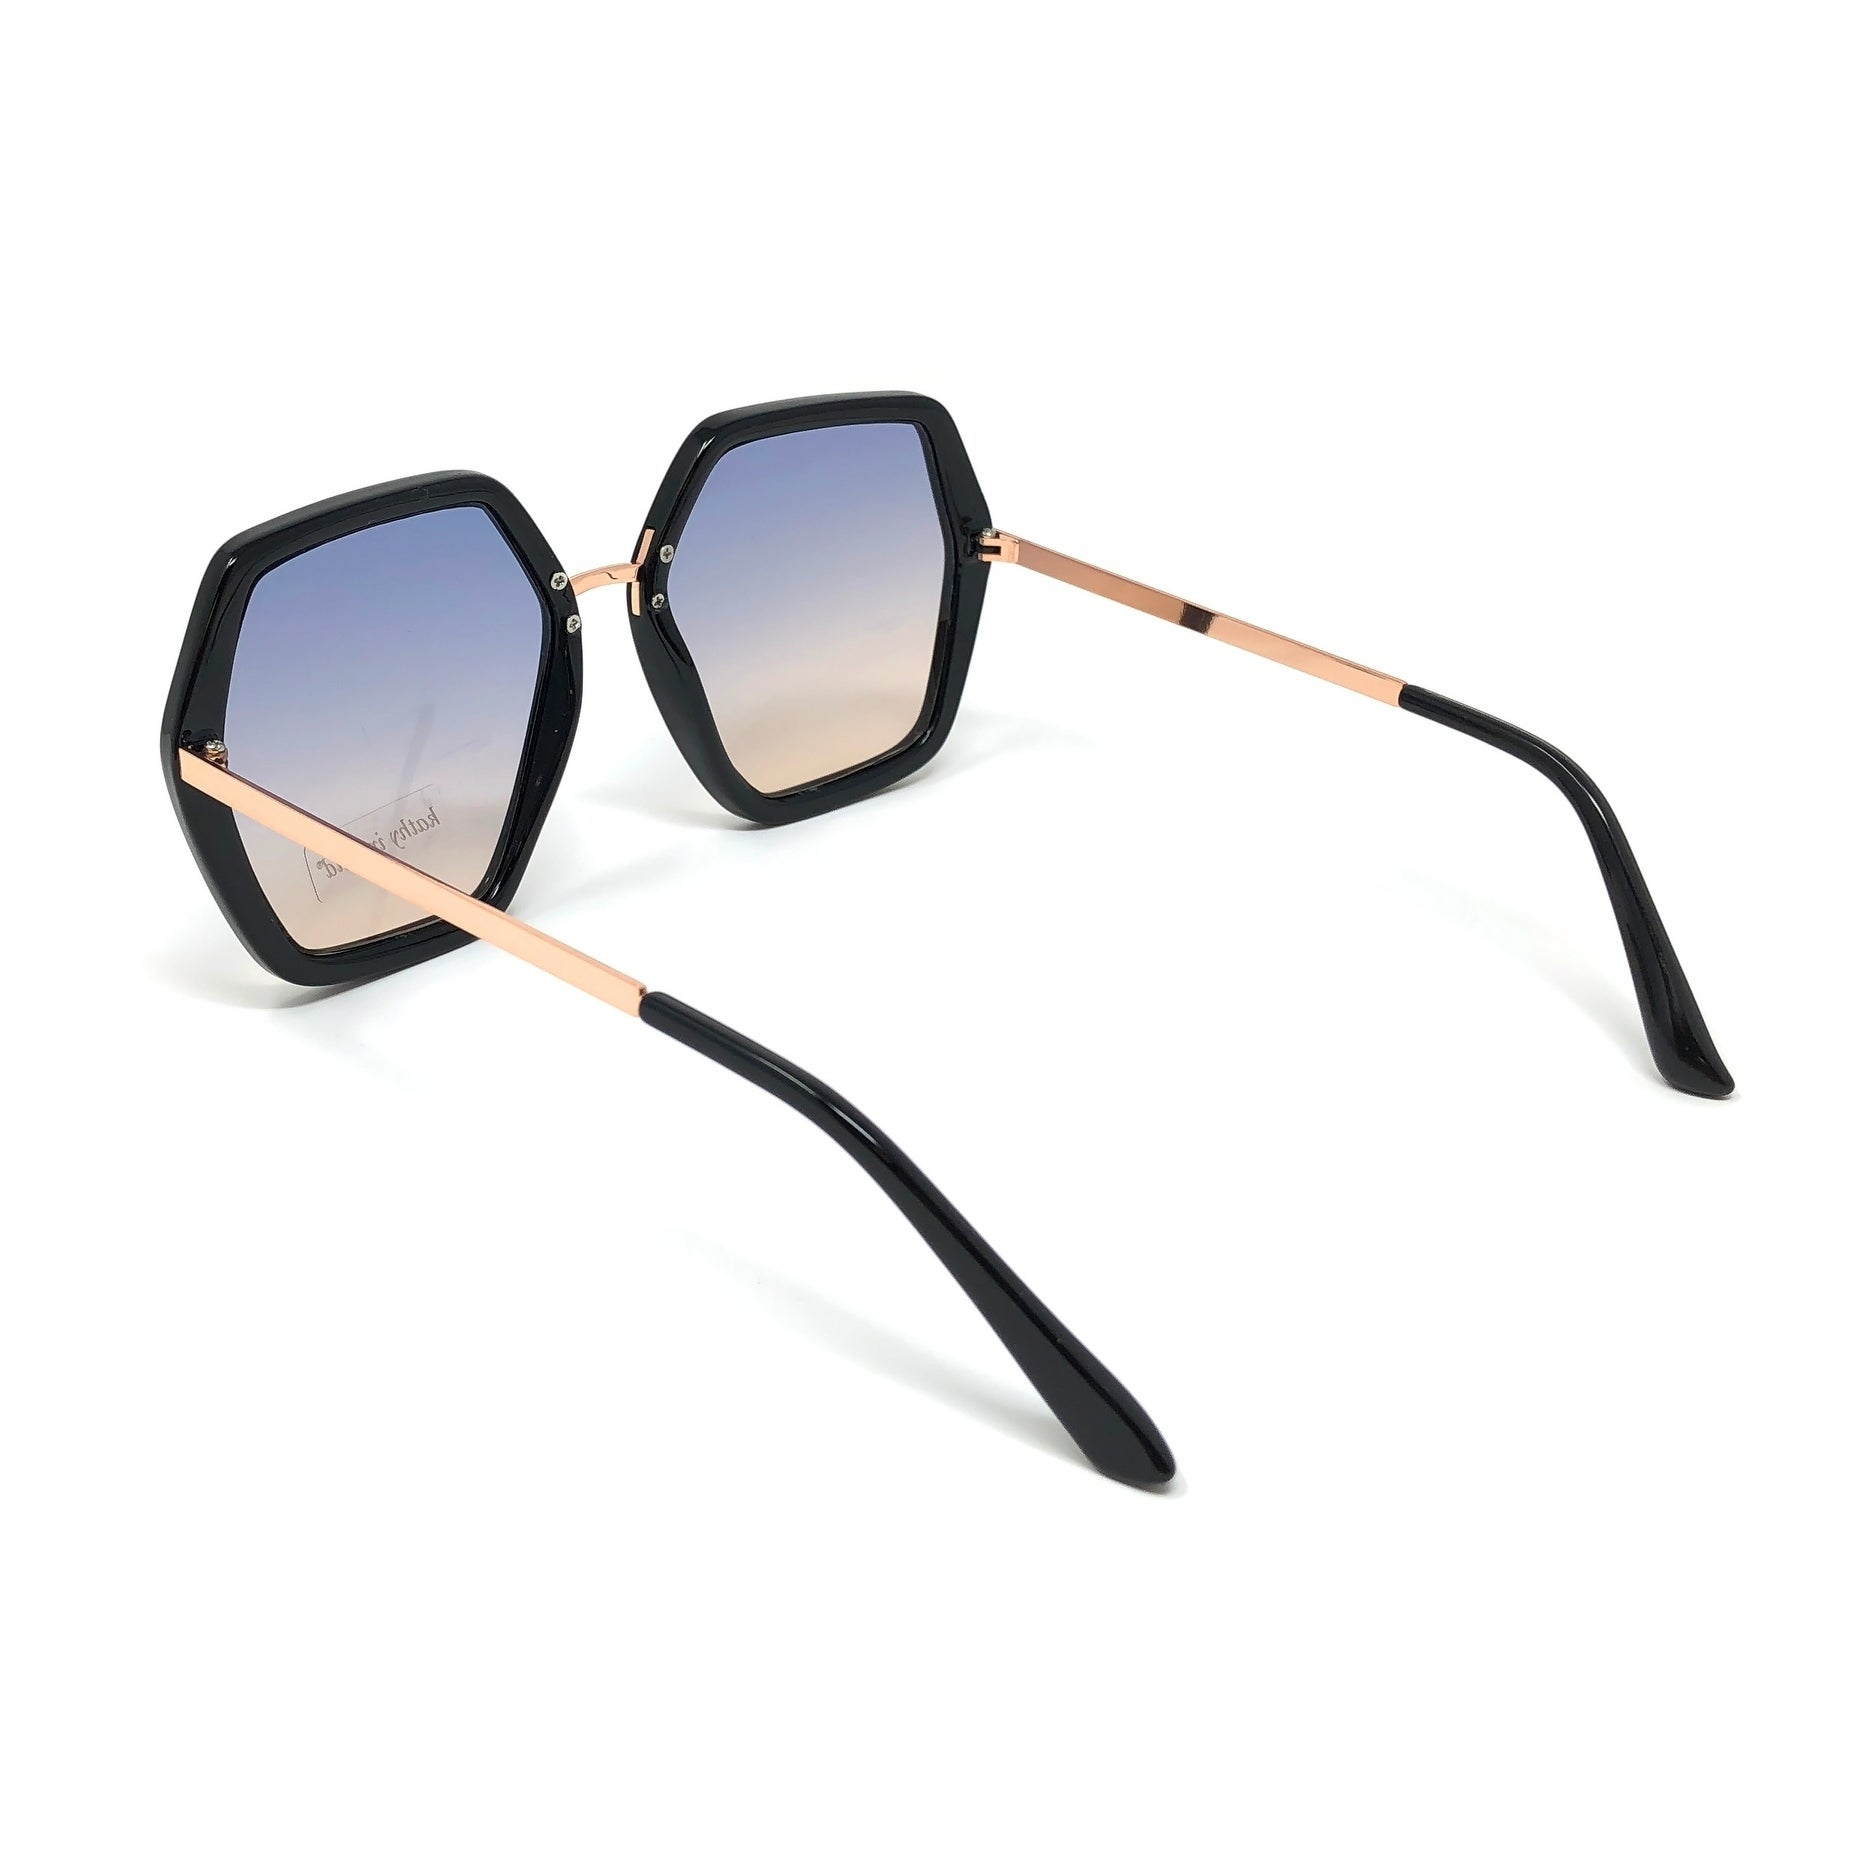 2ecedab11db Shop Kathy Ireland Women s Geometric Black frame with Rose Gold Sunglasses  - Free Shipping On Orders Over  45 - Overstock - 21424058